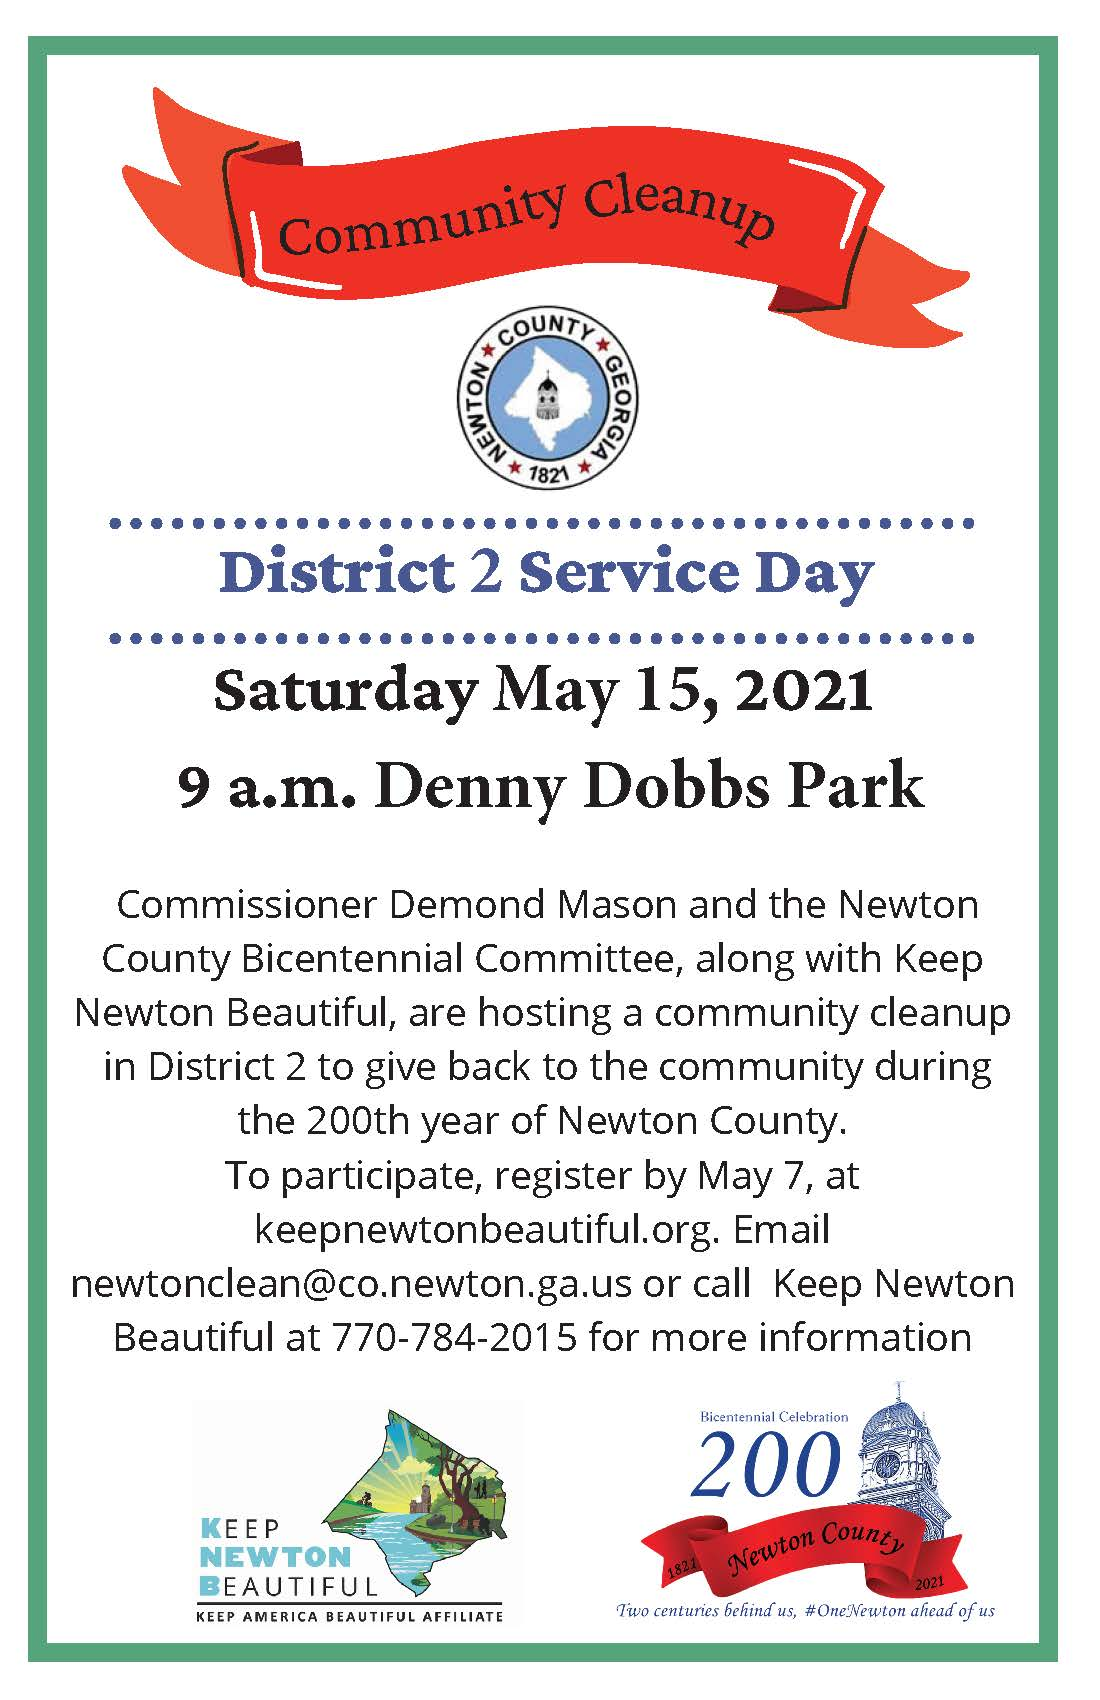 District 2 Community Cleanup flyer